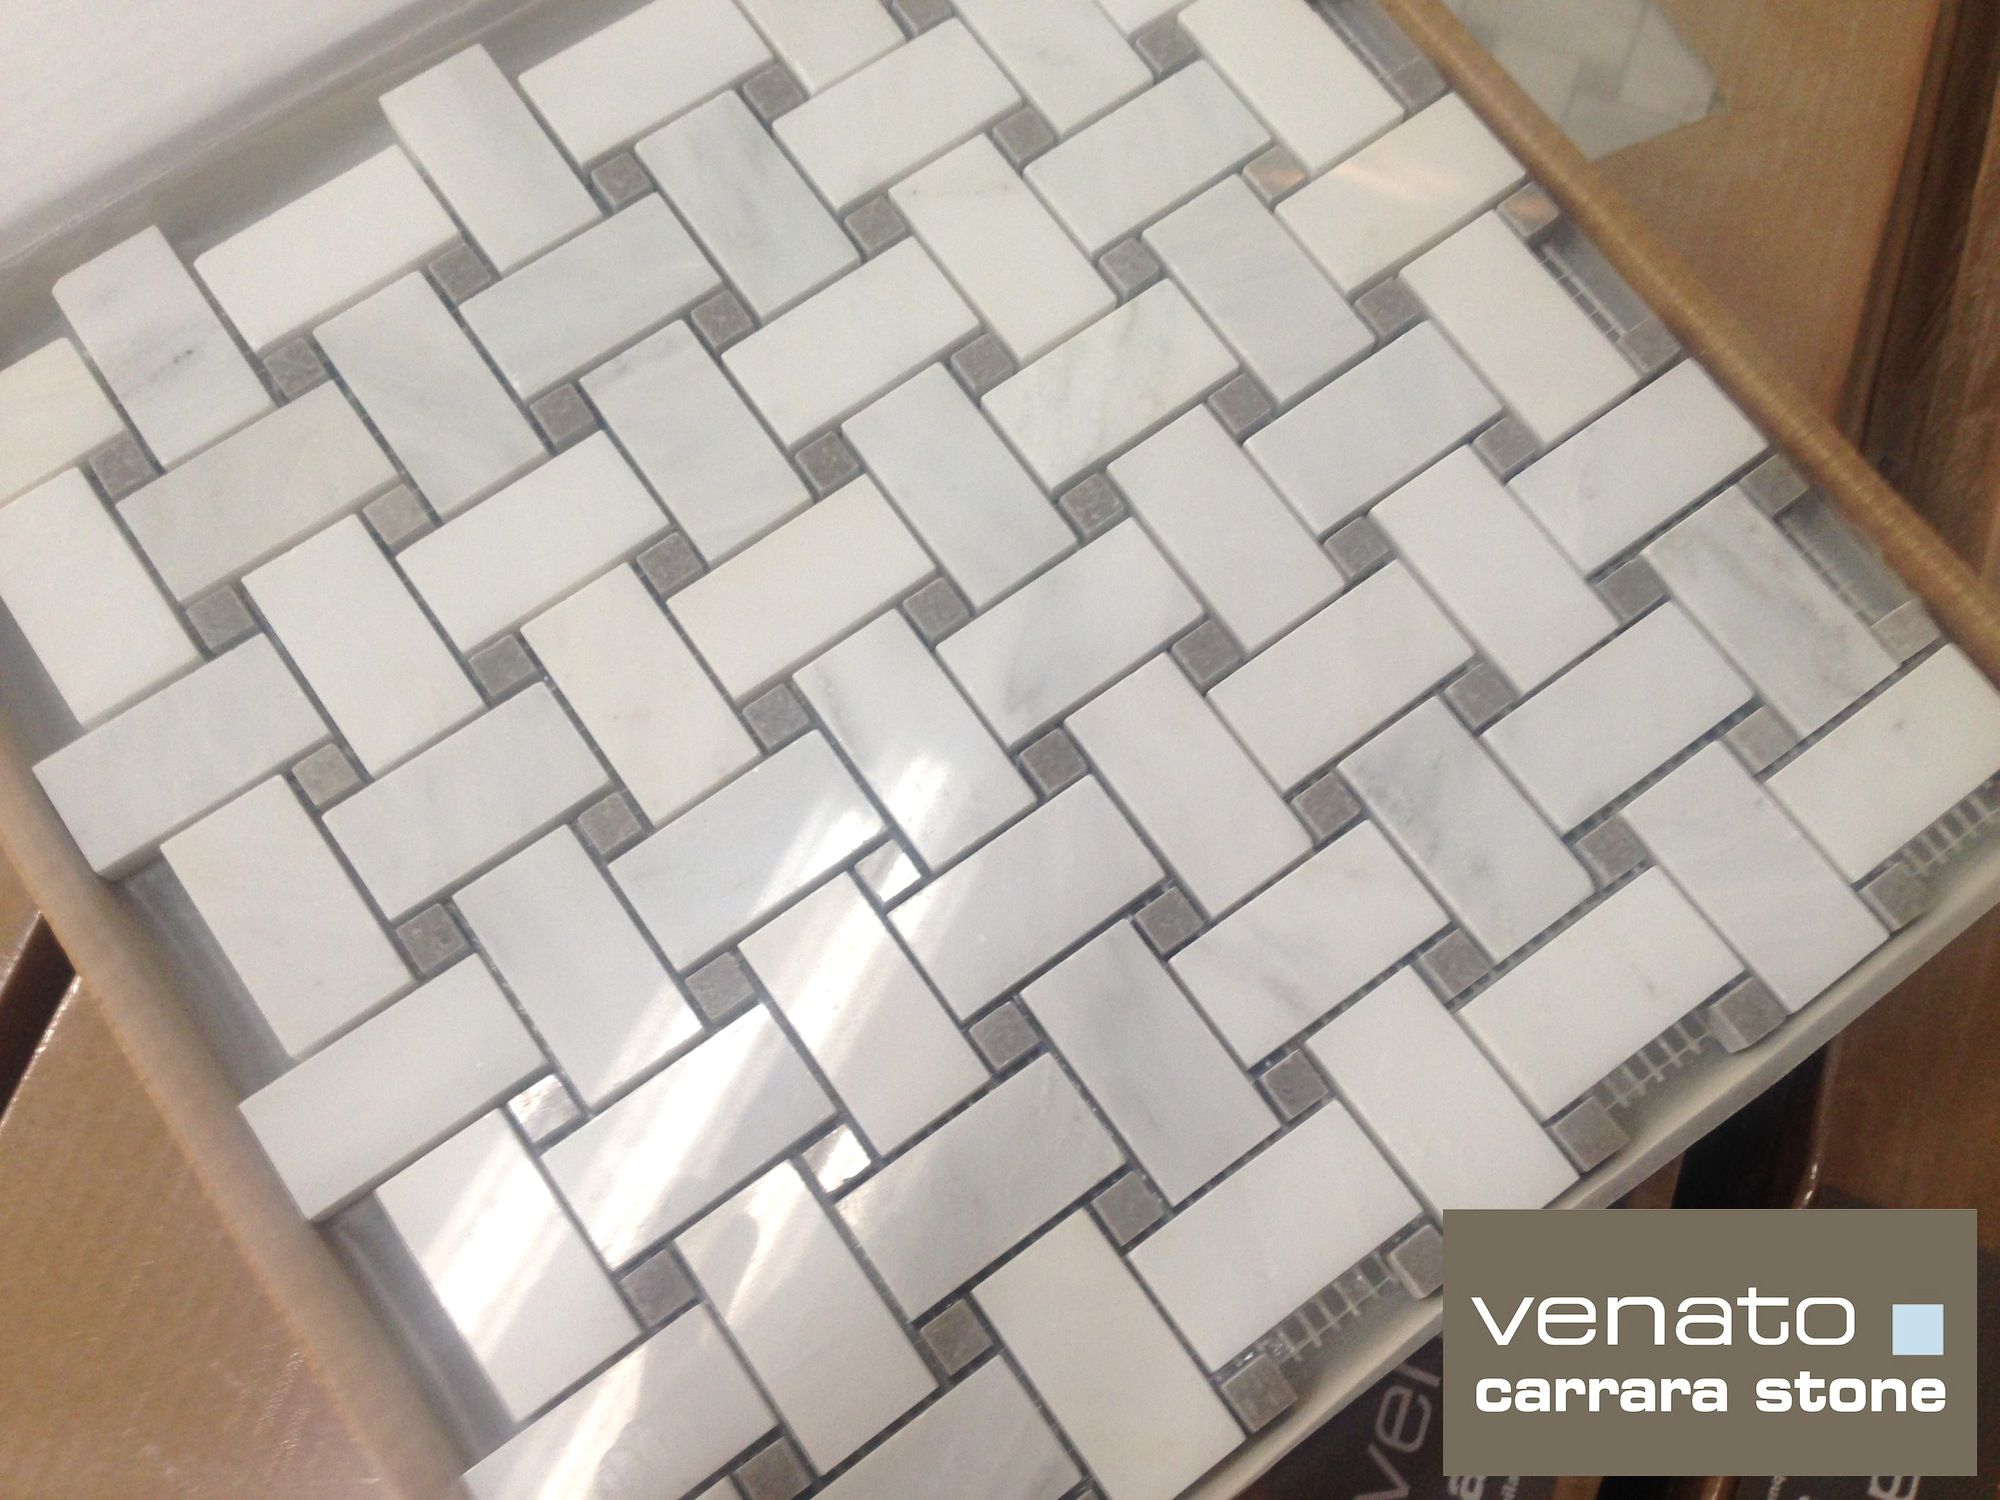 Stunning Basket Weave Tile For Classic Bathroom Design Carrara